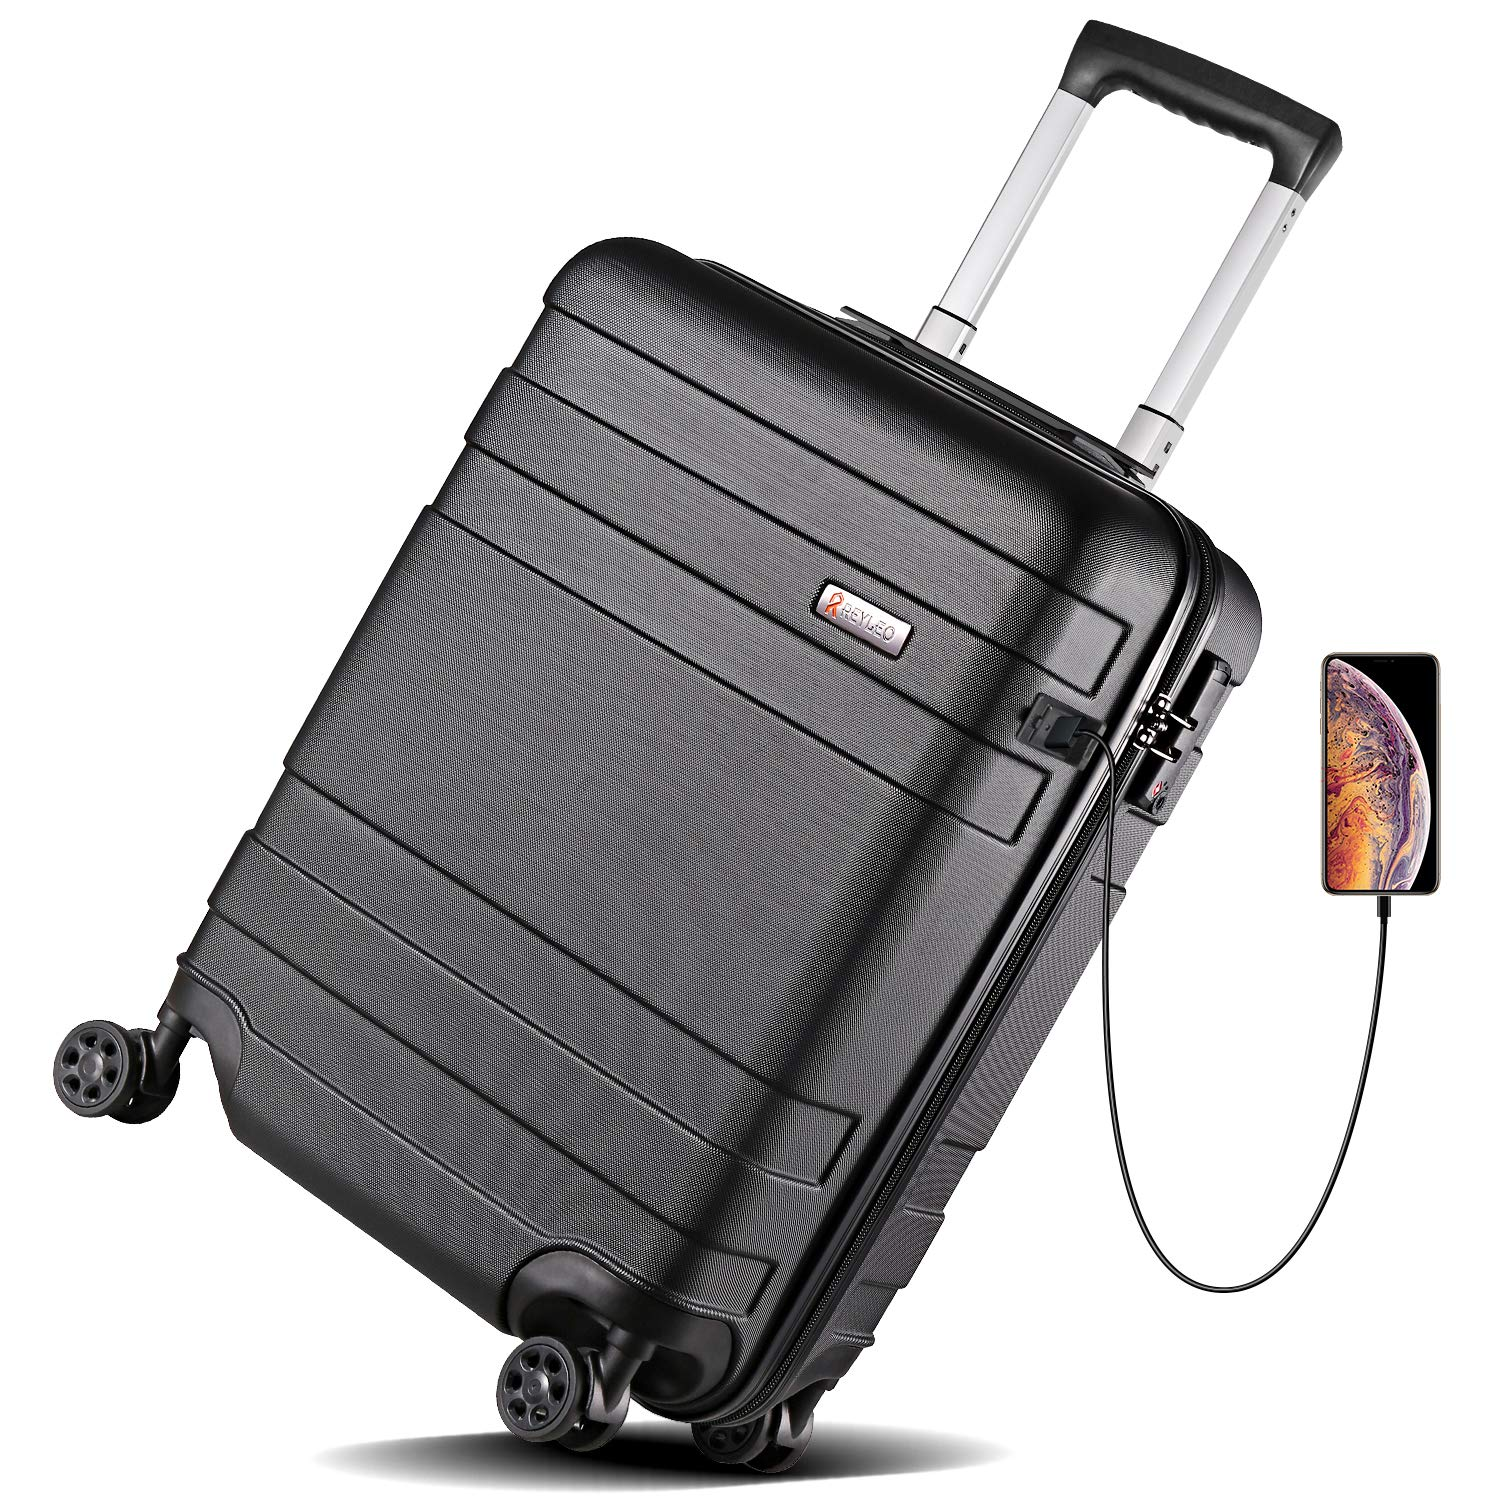 REYLEO Hardside Luggage 21 Inch Carry On Luggage 4-level Handle Travel Suitcase with Two USB Charging Port 8 Silent Spinner Wheels Built-in TSA Lock, LUG20C best spinner luggage